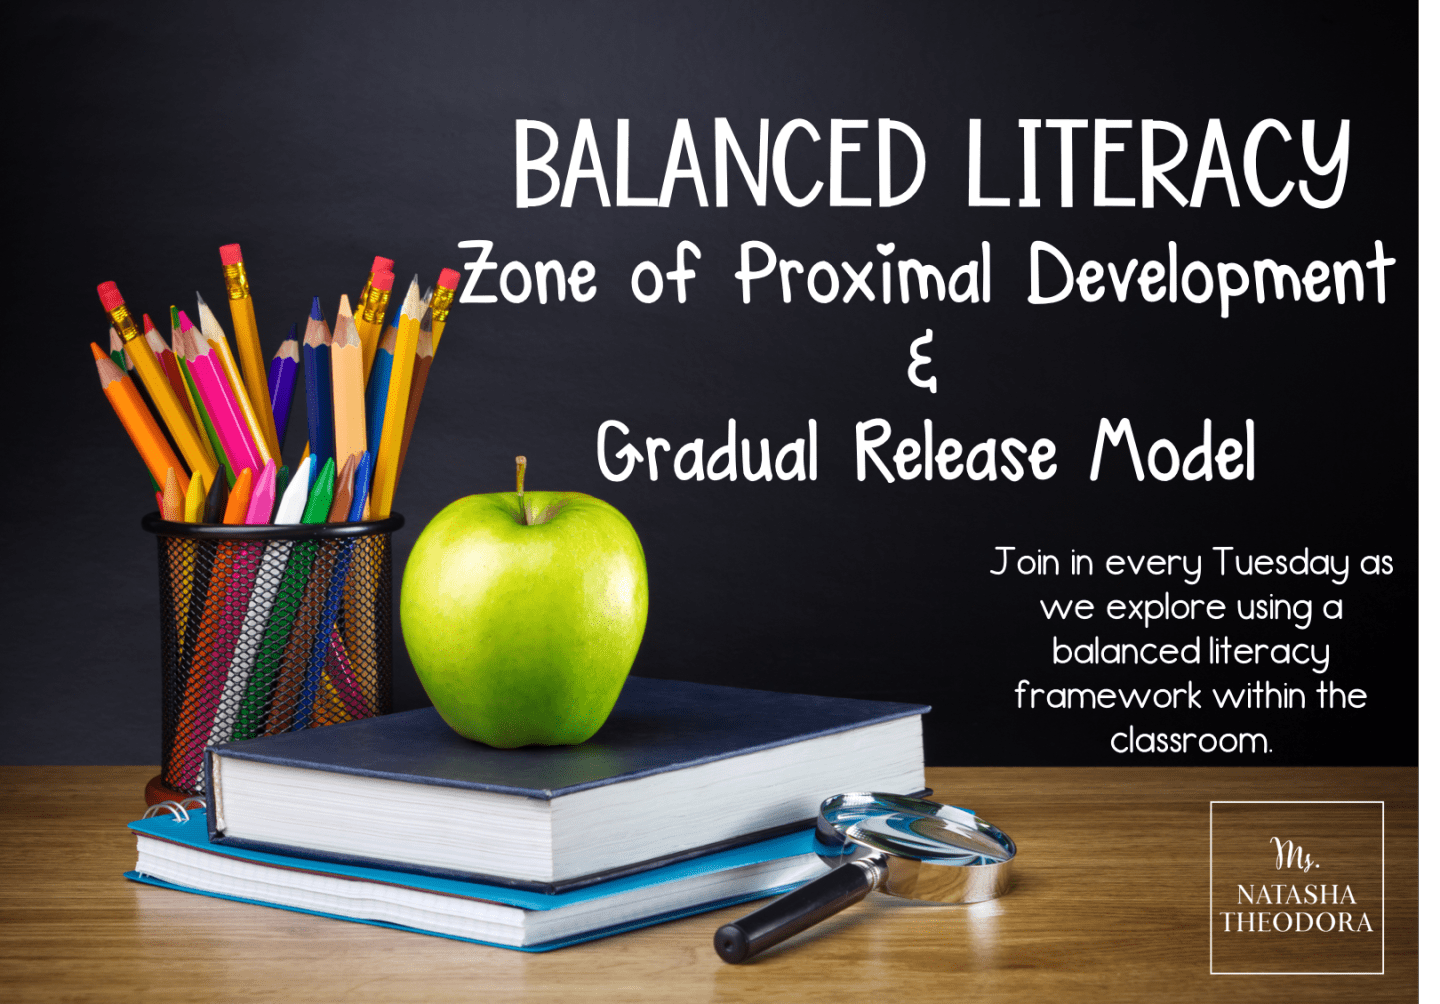 Zone of Proximal Development in Balanced Literacy